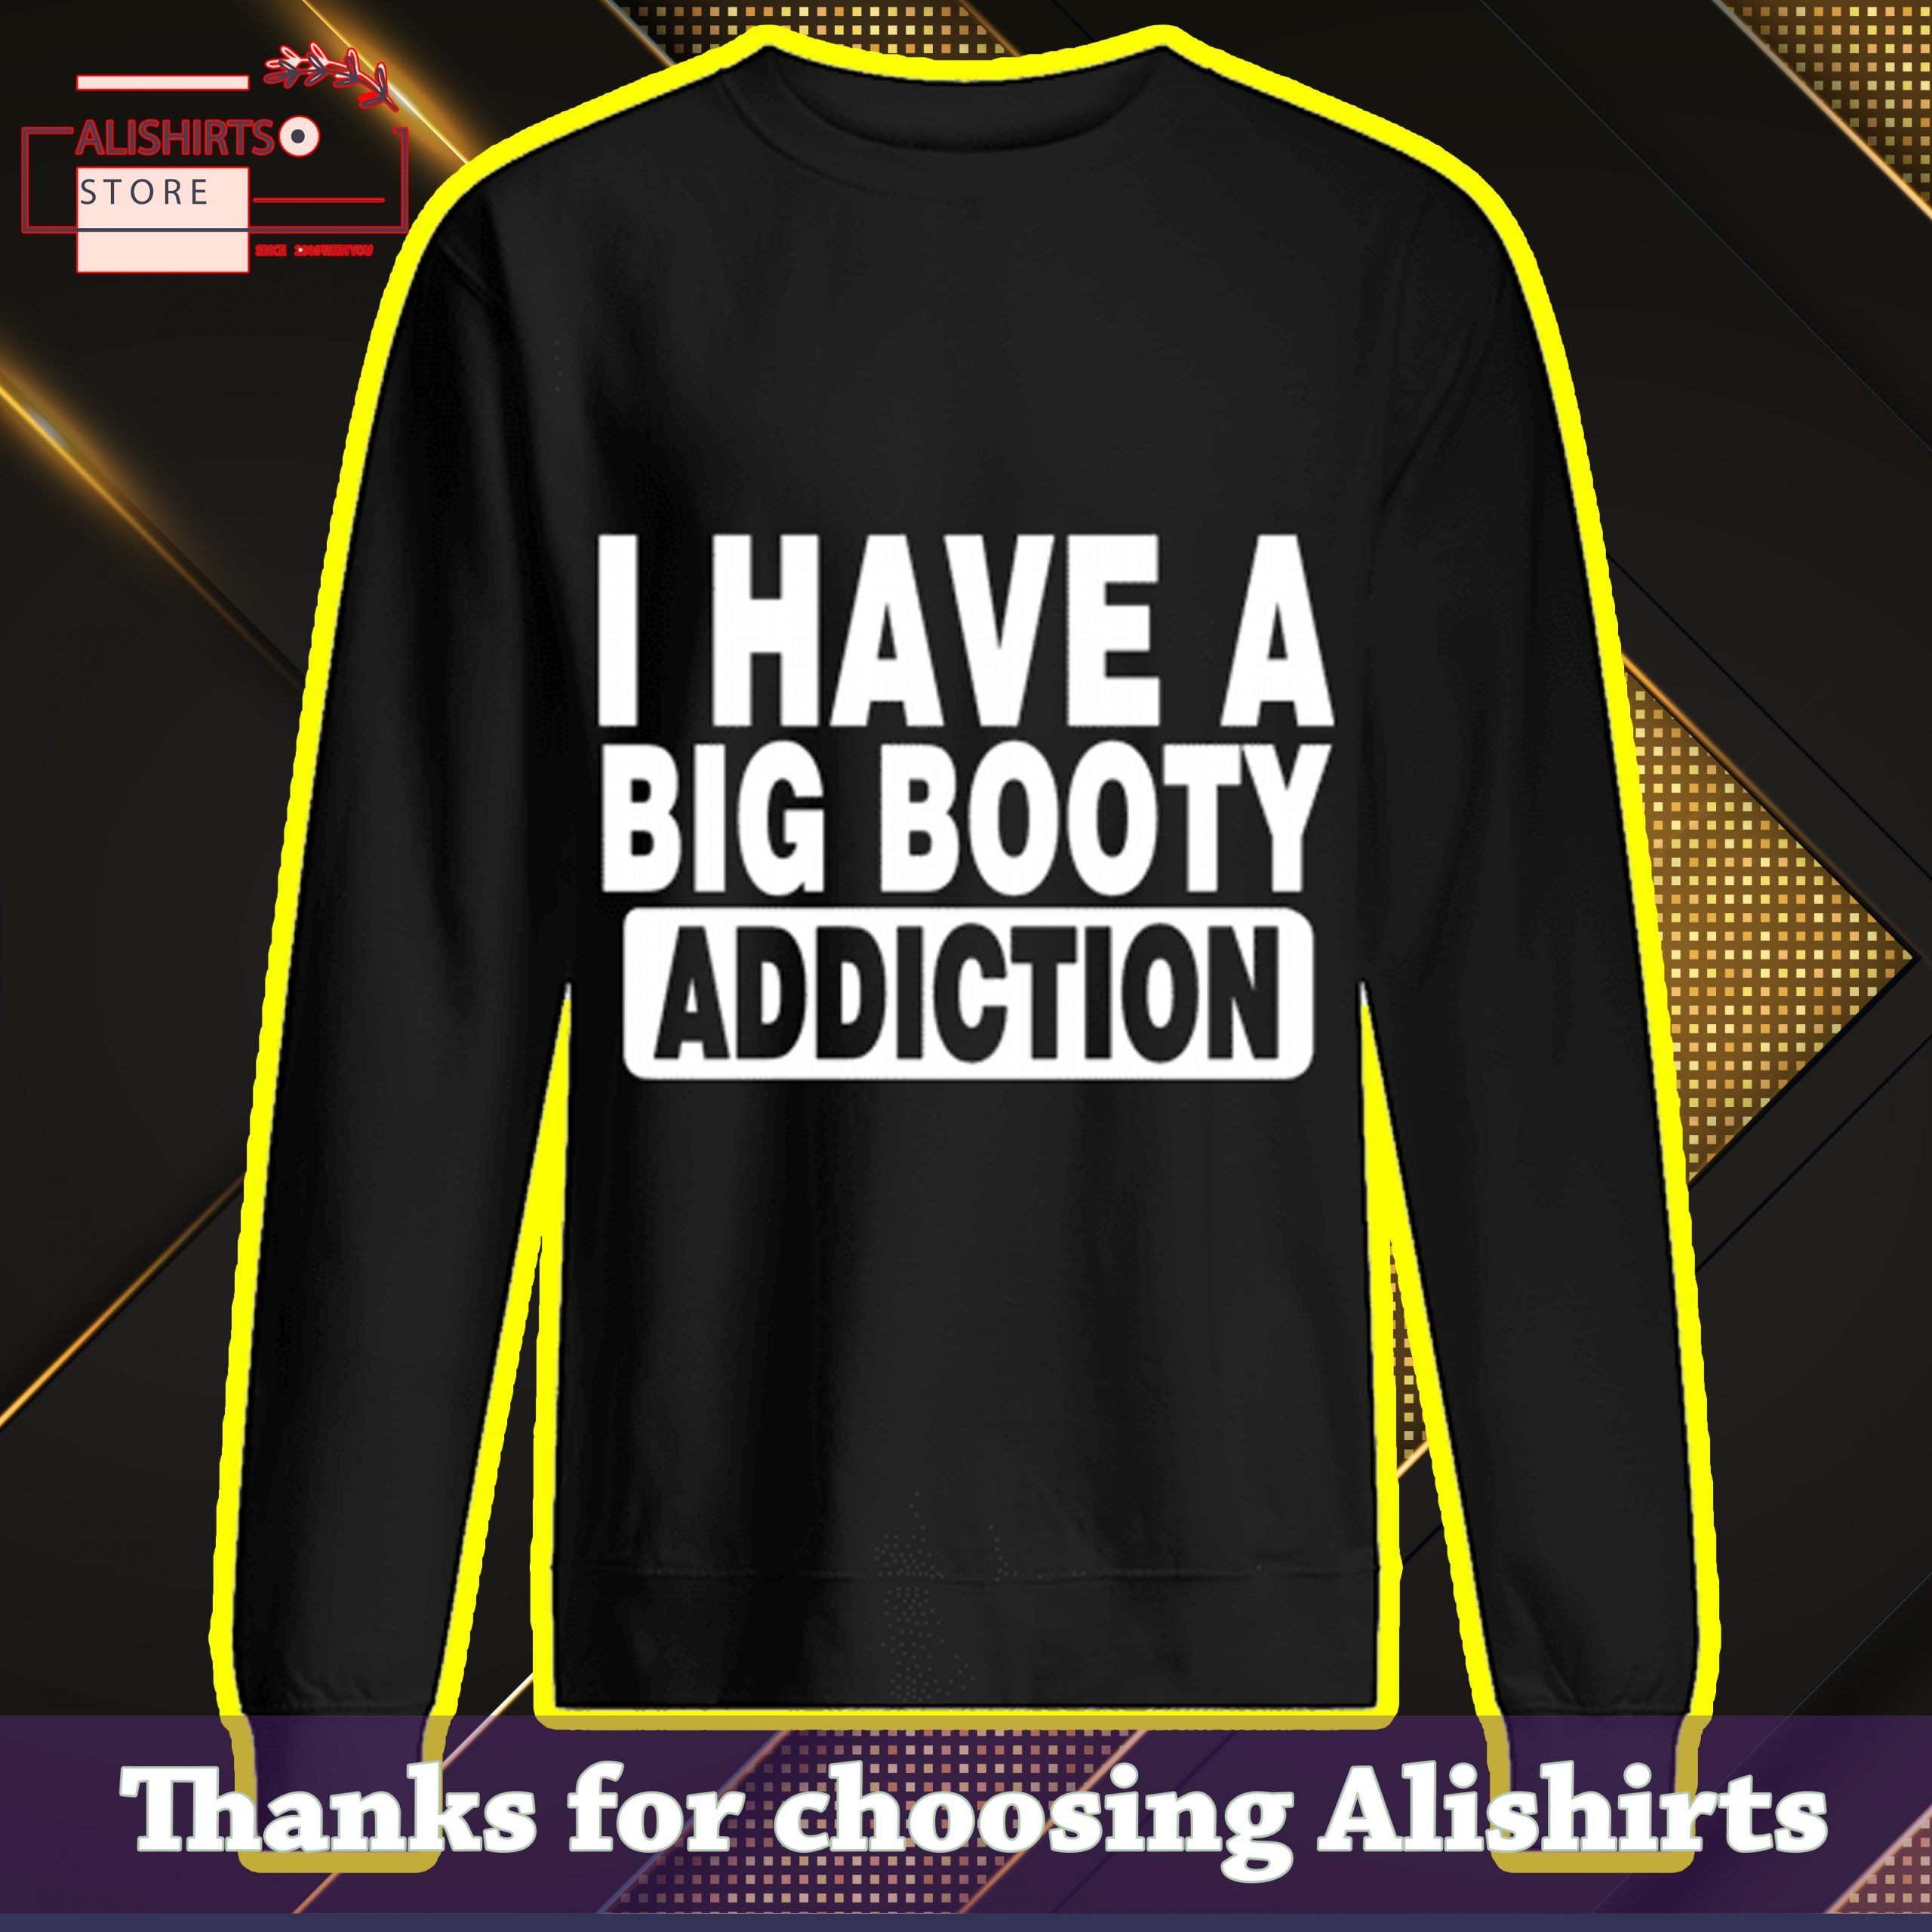 I have a big booty addiction Shirt, Hoodie, Tank Top